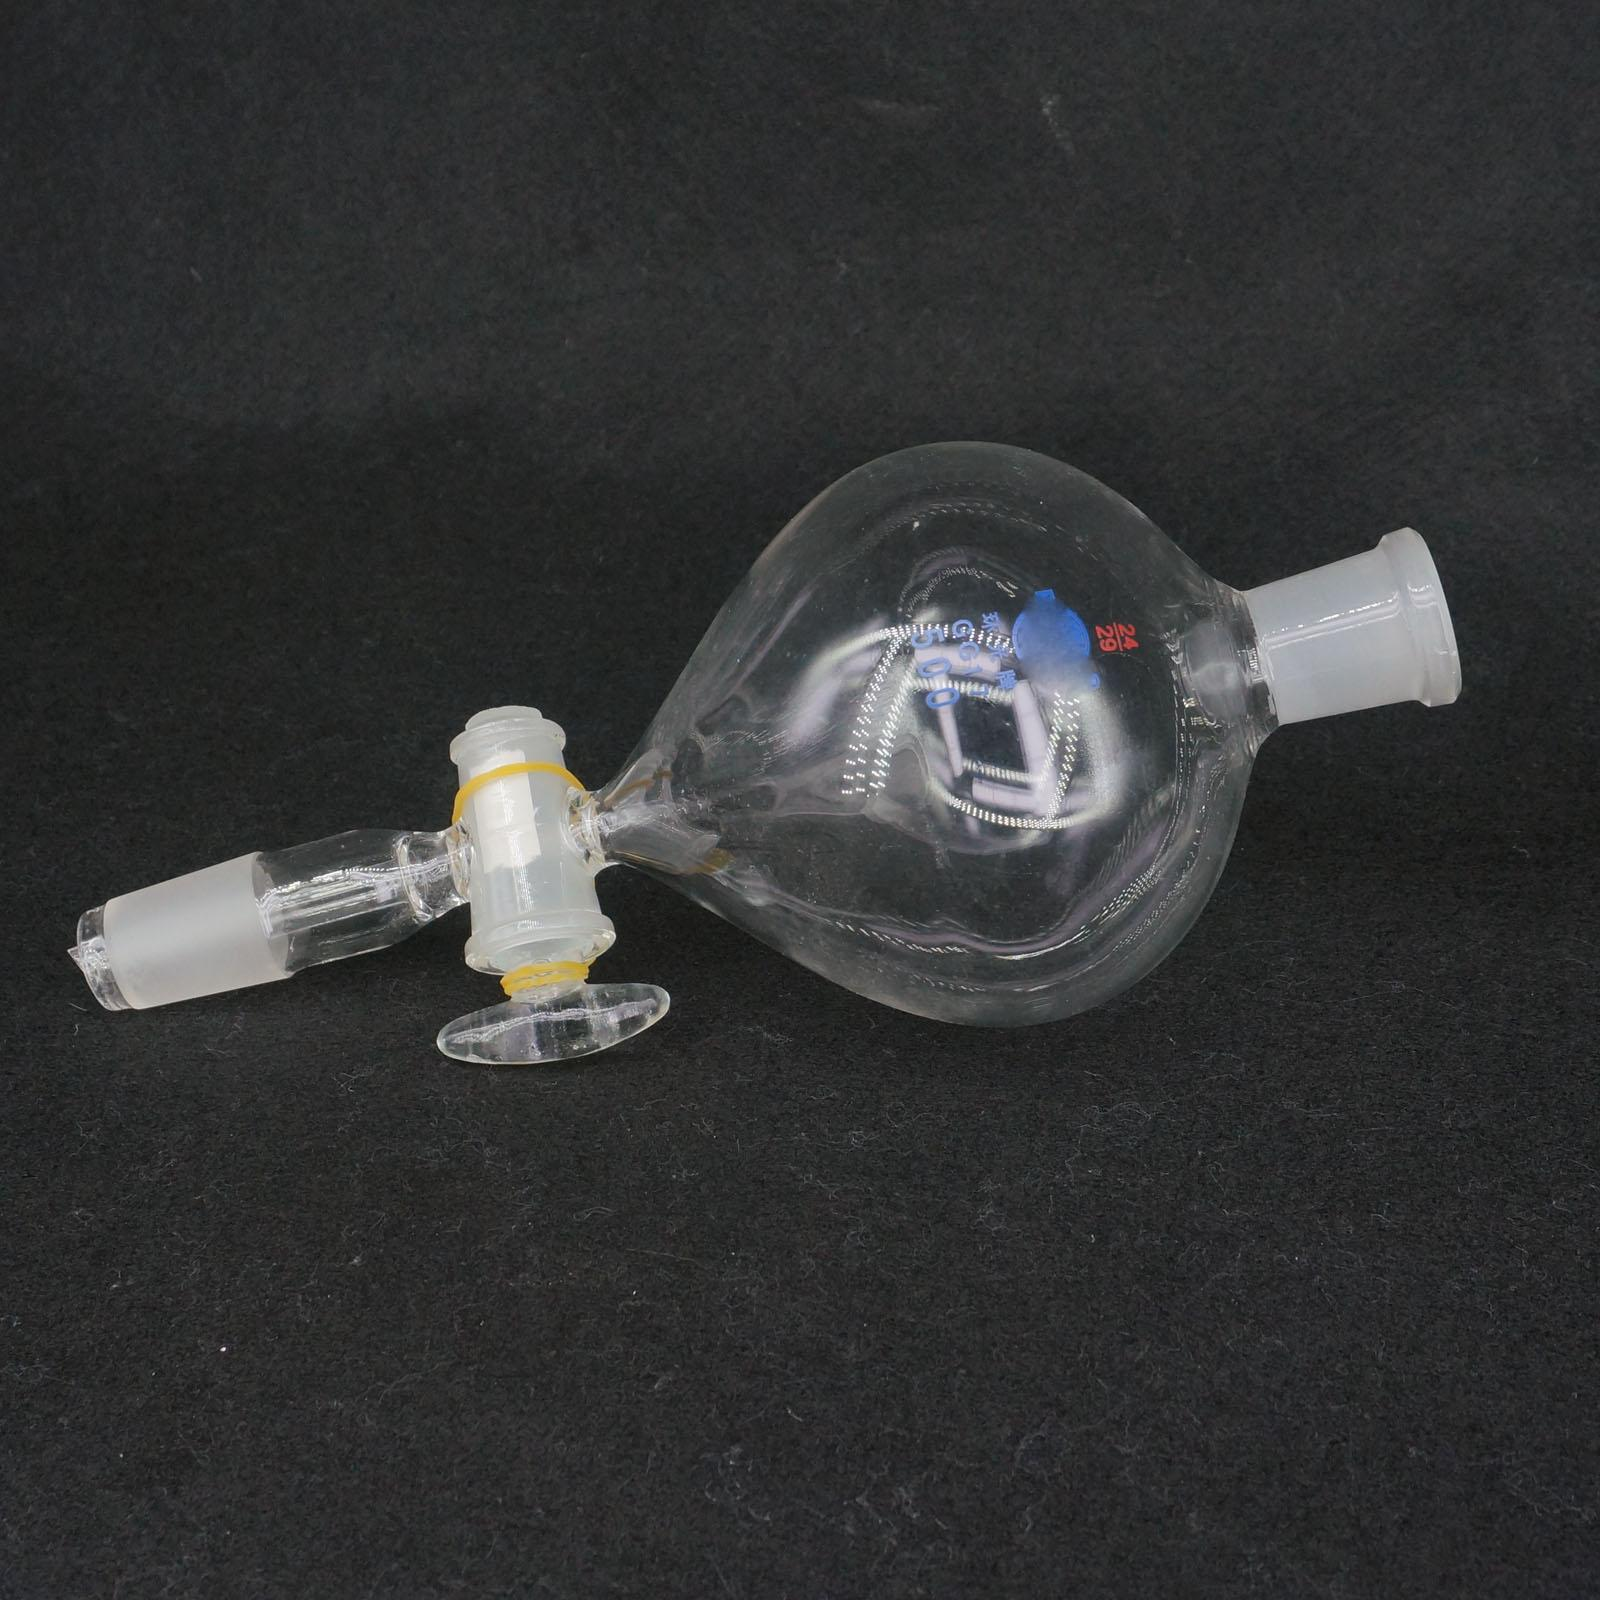 500ml 24/29 Ground Joint Ball Shaped Lab Separatory Funnel With Glass Stopcock500ml 24/29 Ground Joint Ball Shaped Lab Separatory Funnel With Glass Stopcock